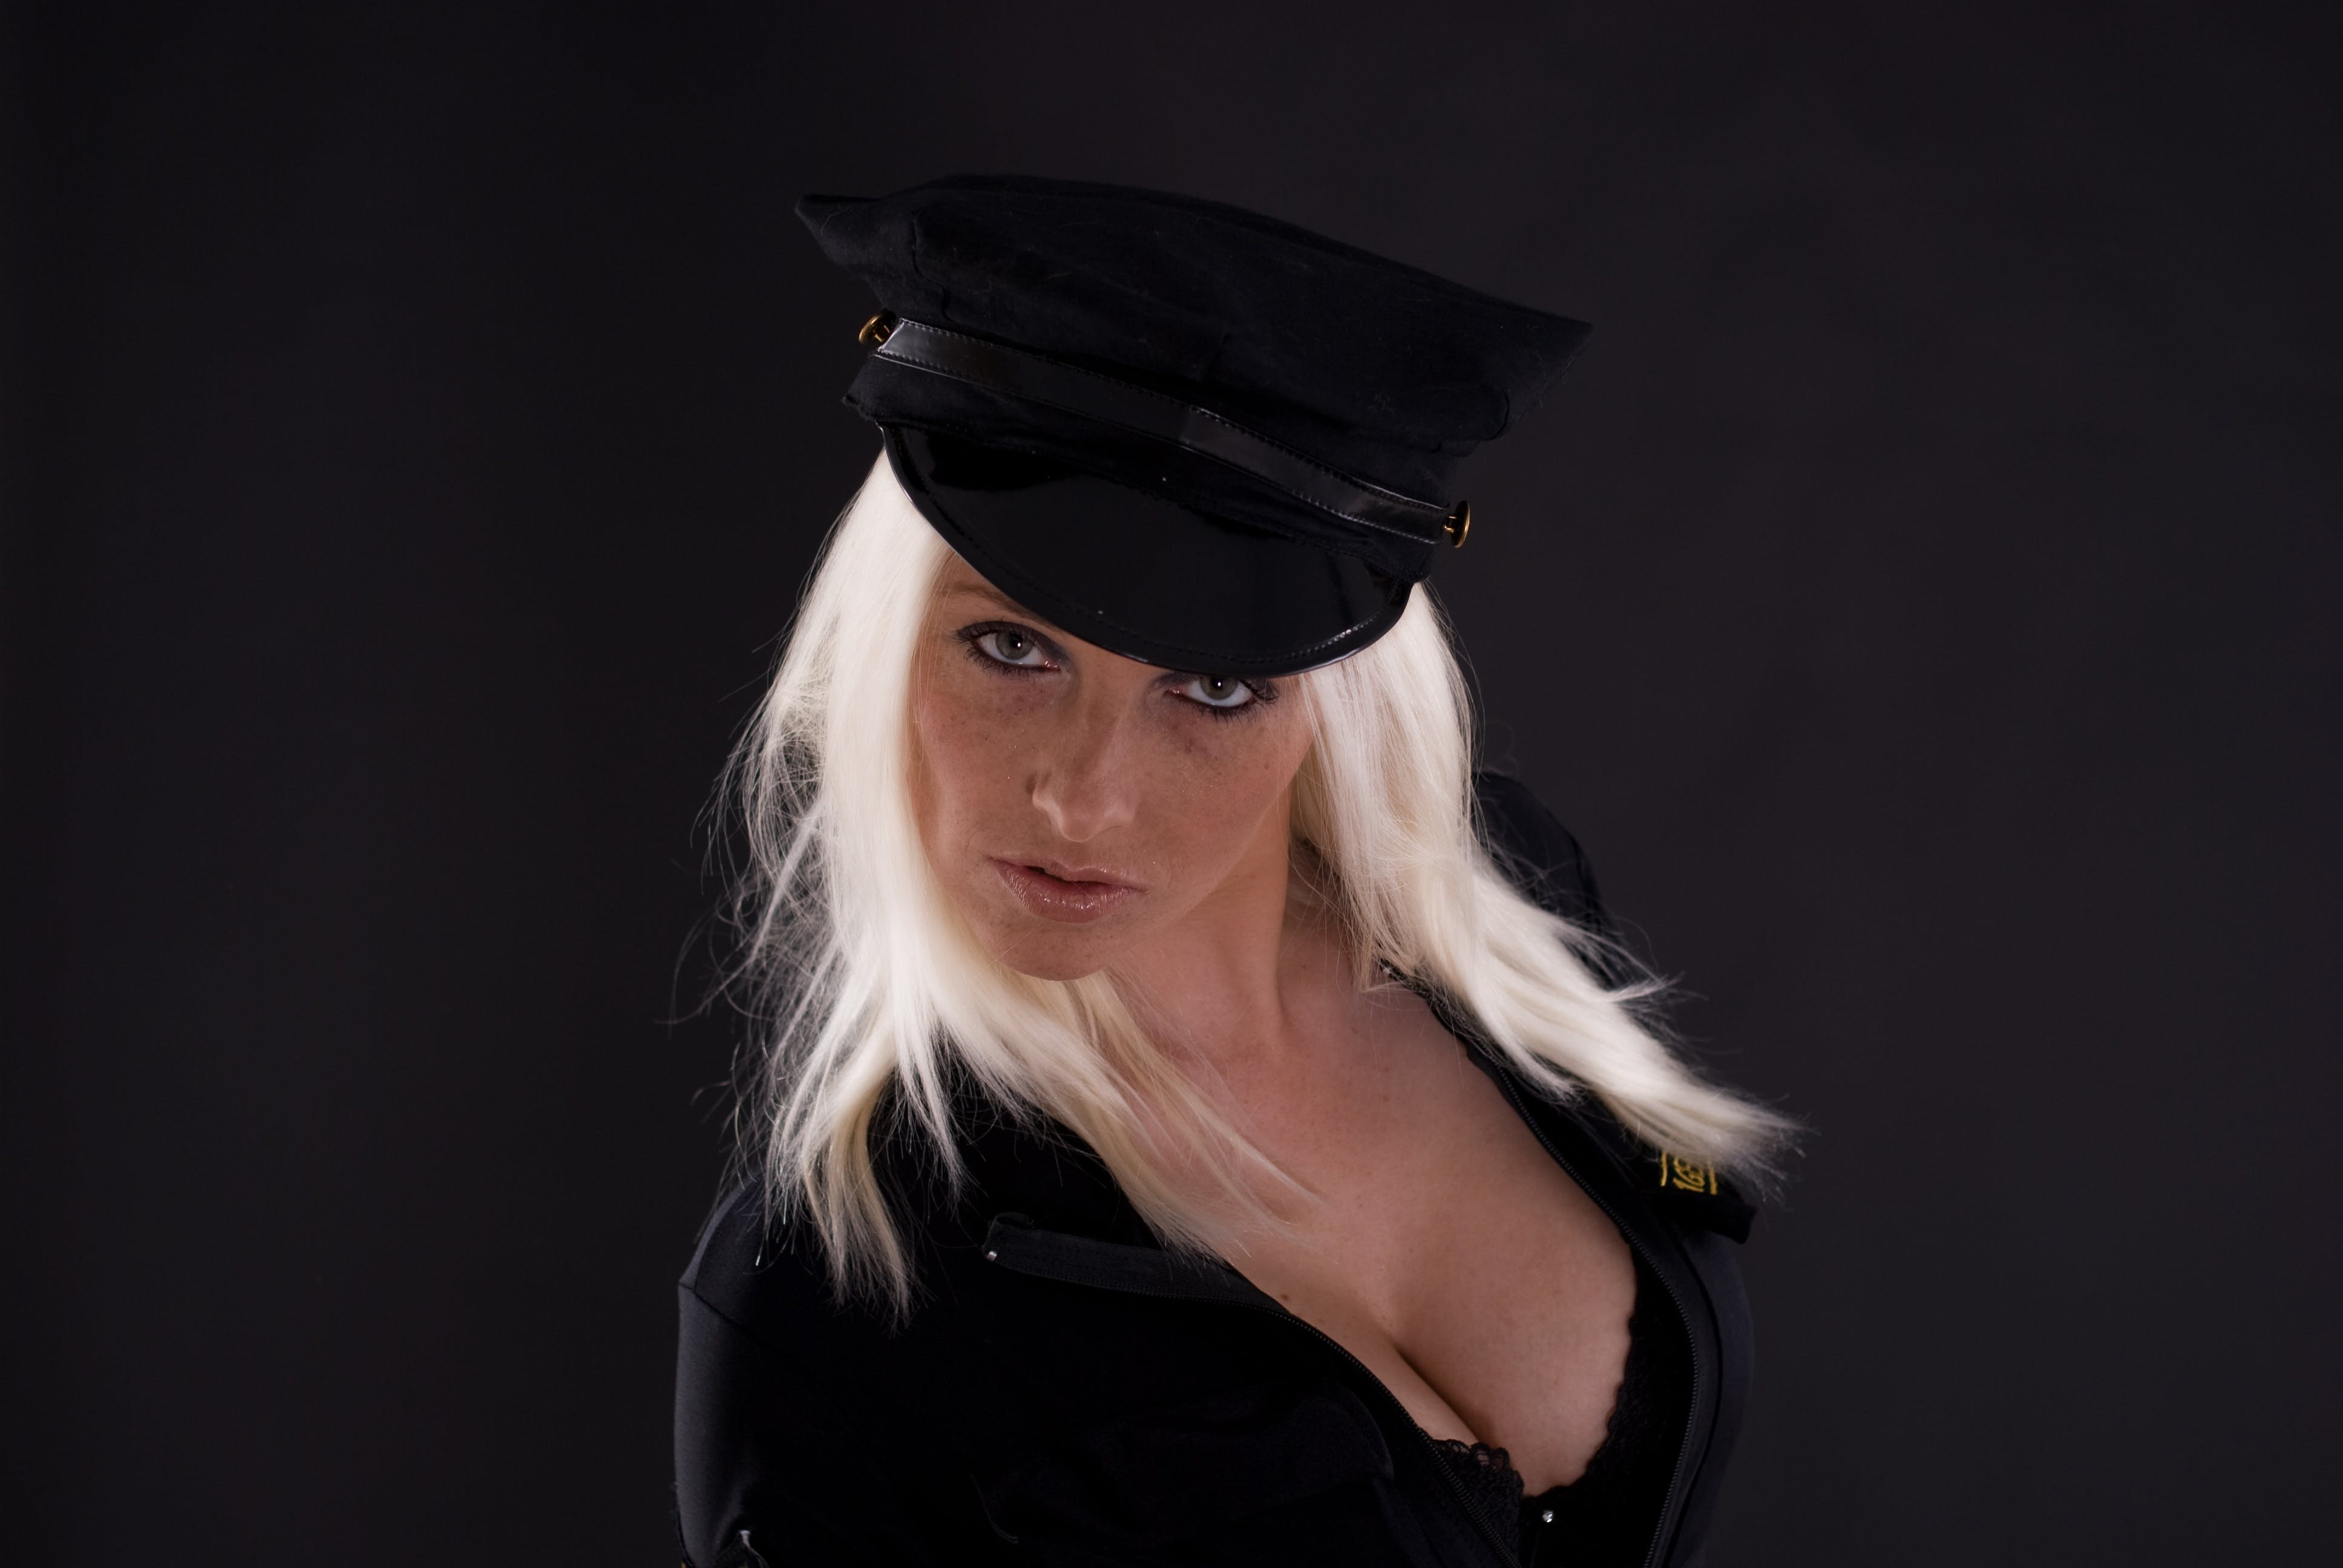 Free stock photo of woman, girl, police, face